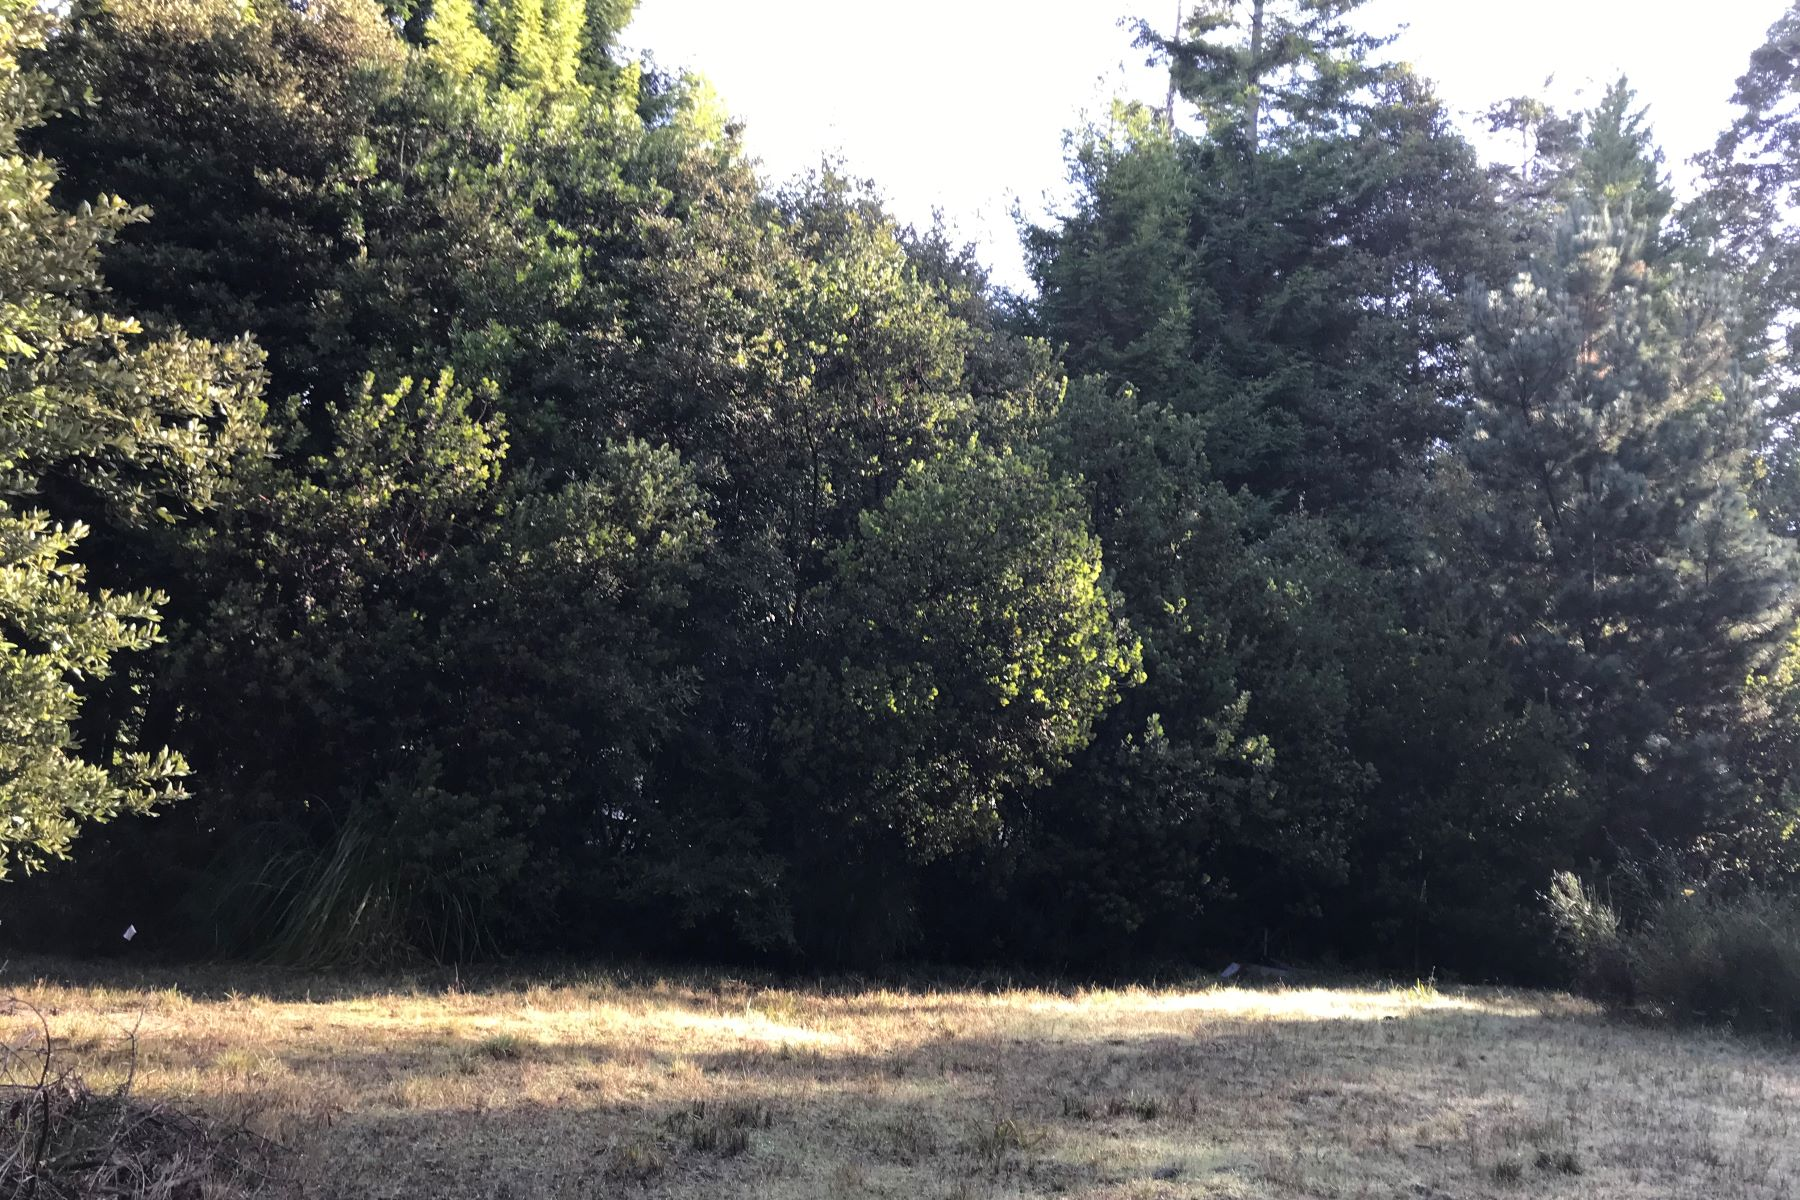 Land for Sale at Park-Like Setting 15750 Shane Drive Fort Bragg, California 95437 United States